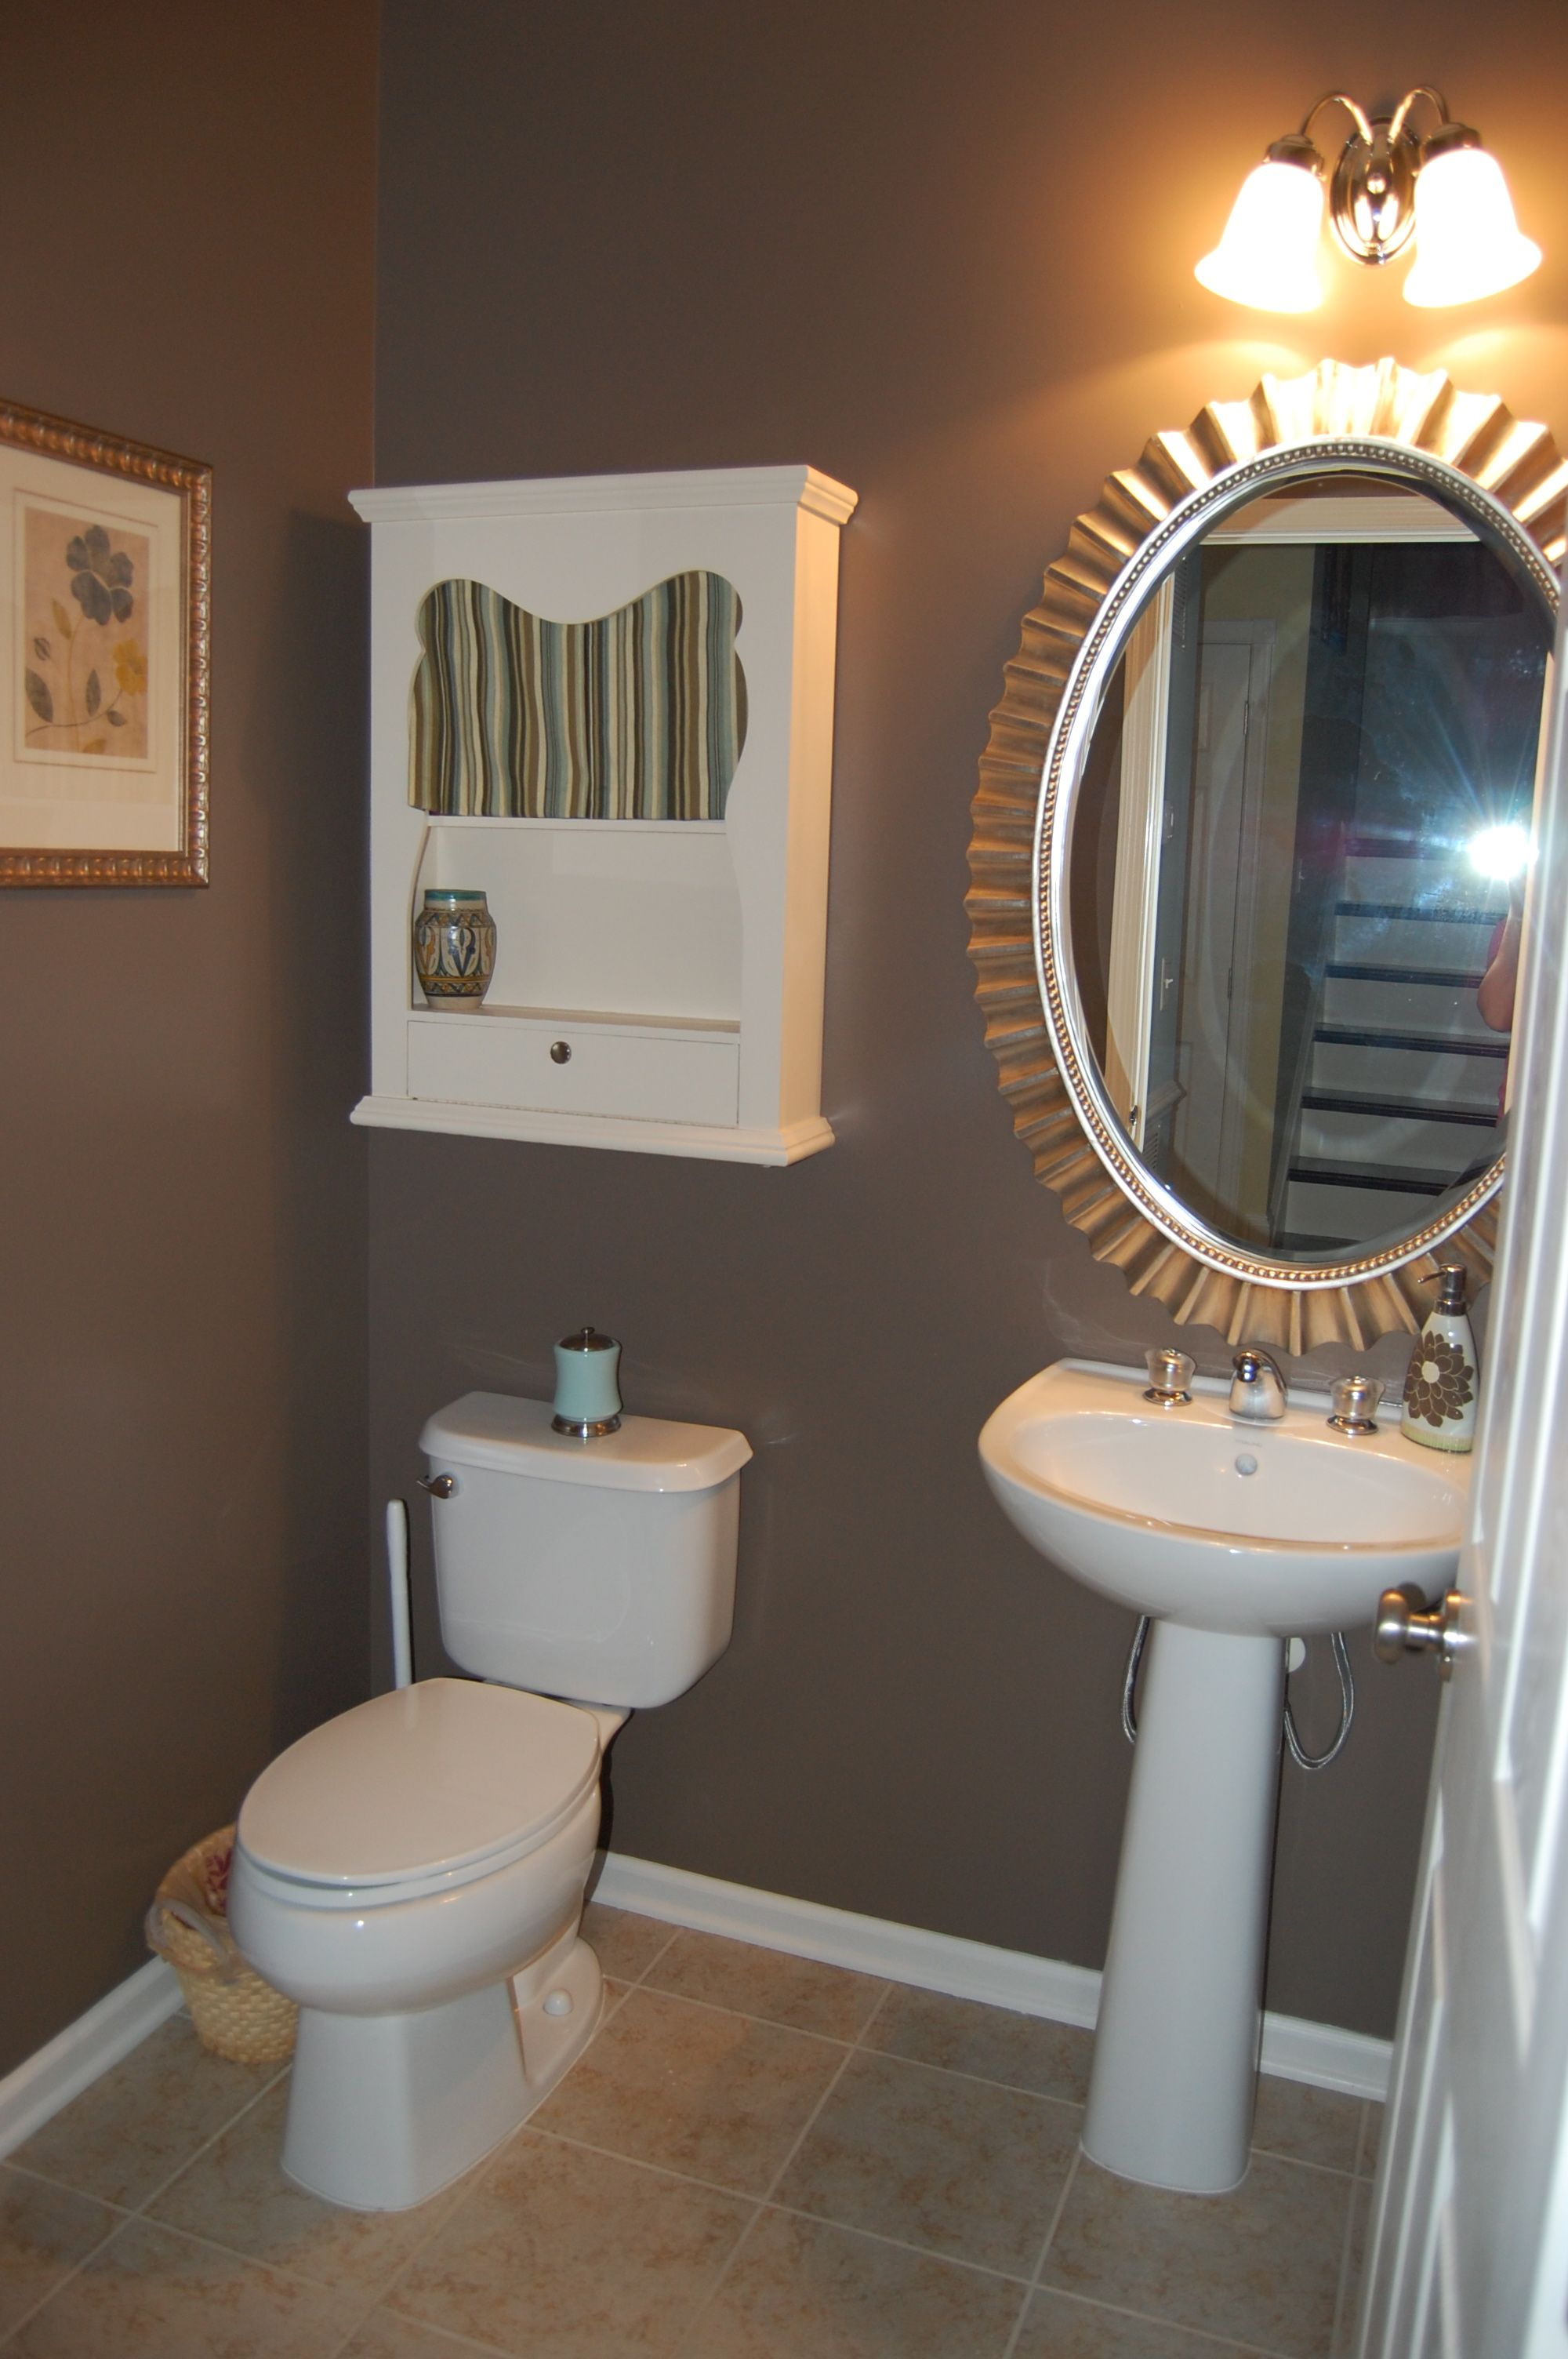 Bathroom lovable brown bathroom with outstanding oval wall mirror framed design also fetching white wood cabinet idea stunning bathroom paint ideas with